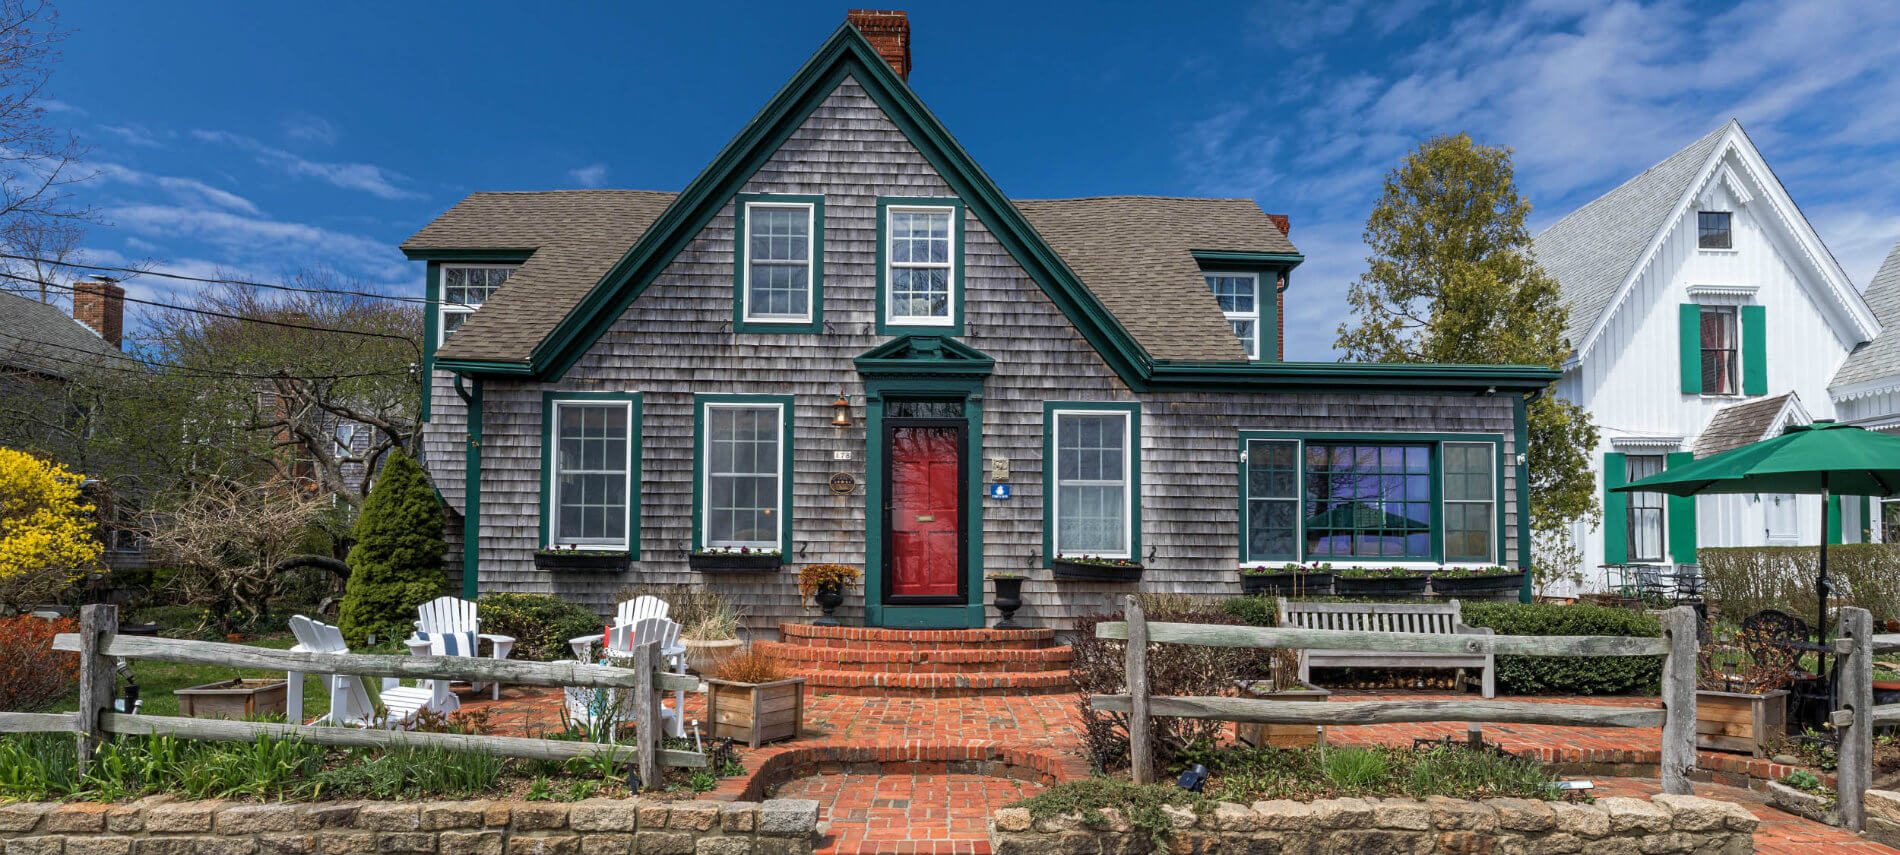 cottage tiny in town ma provincetown cottages a sq cape cod ft house